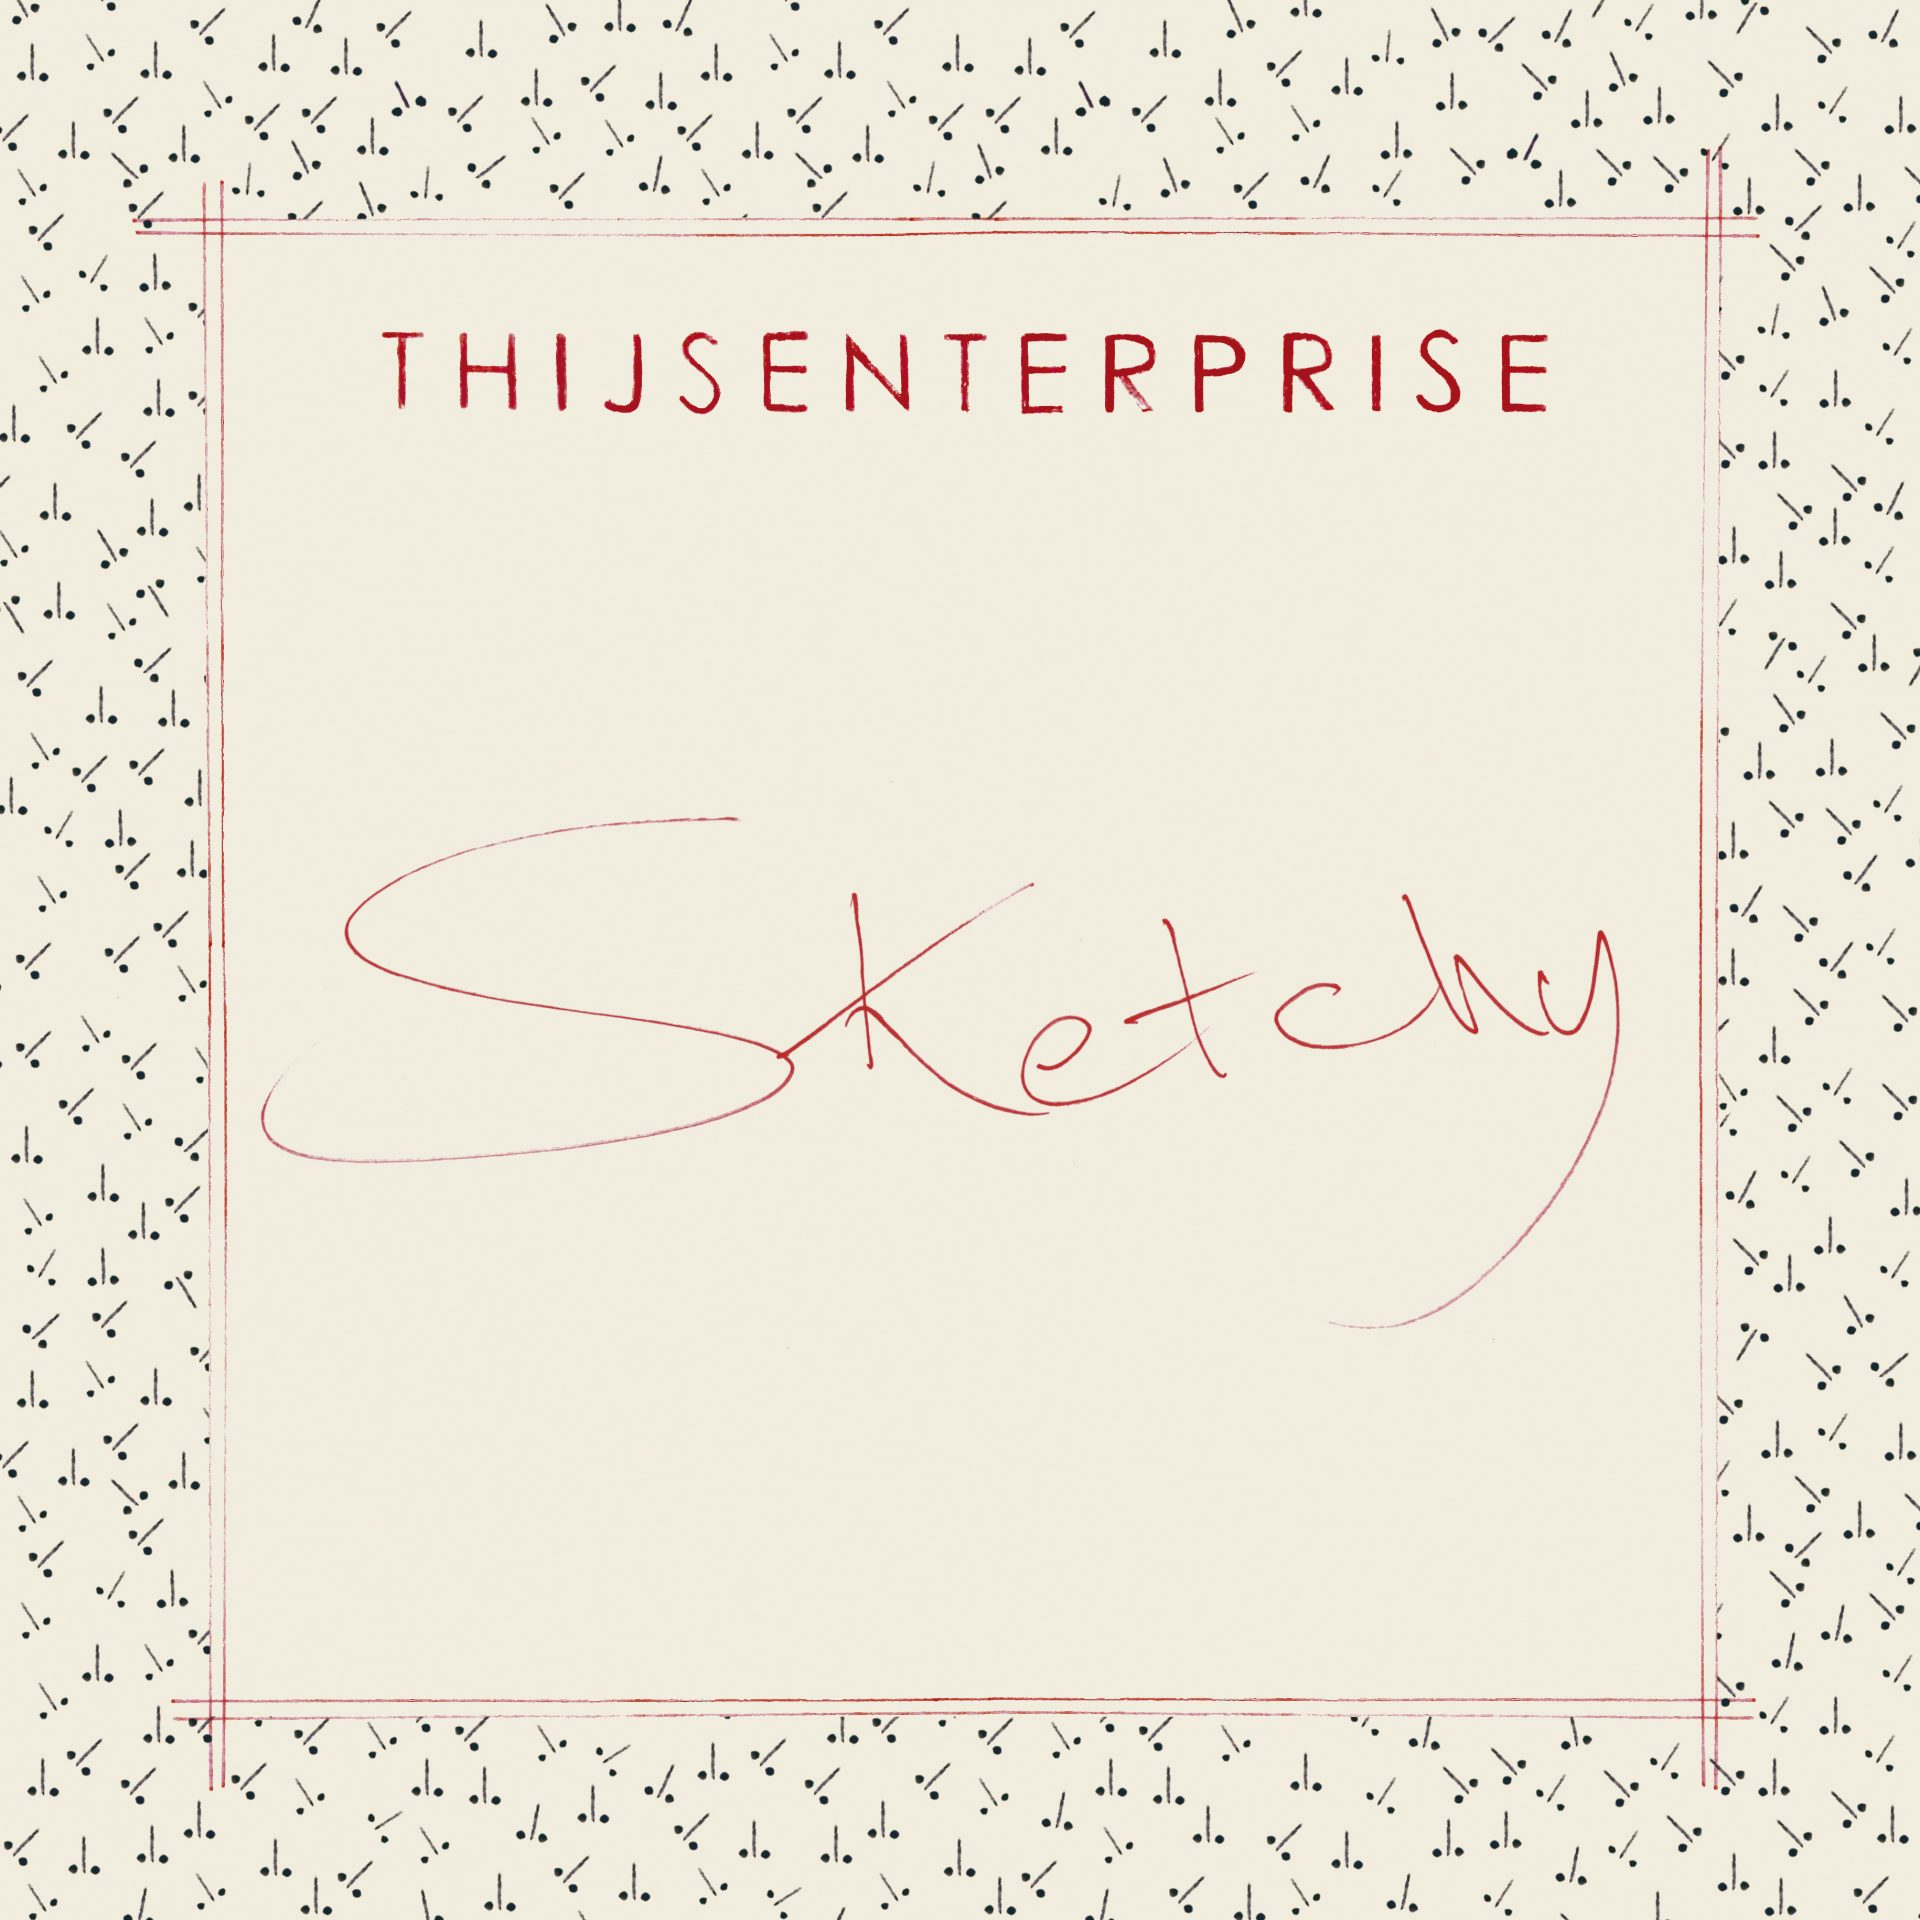 'Sketchy' Skating over a Catchy Groove (New Thijsenterprise)